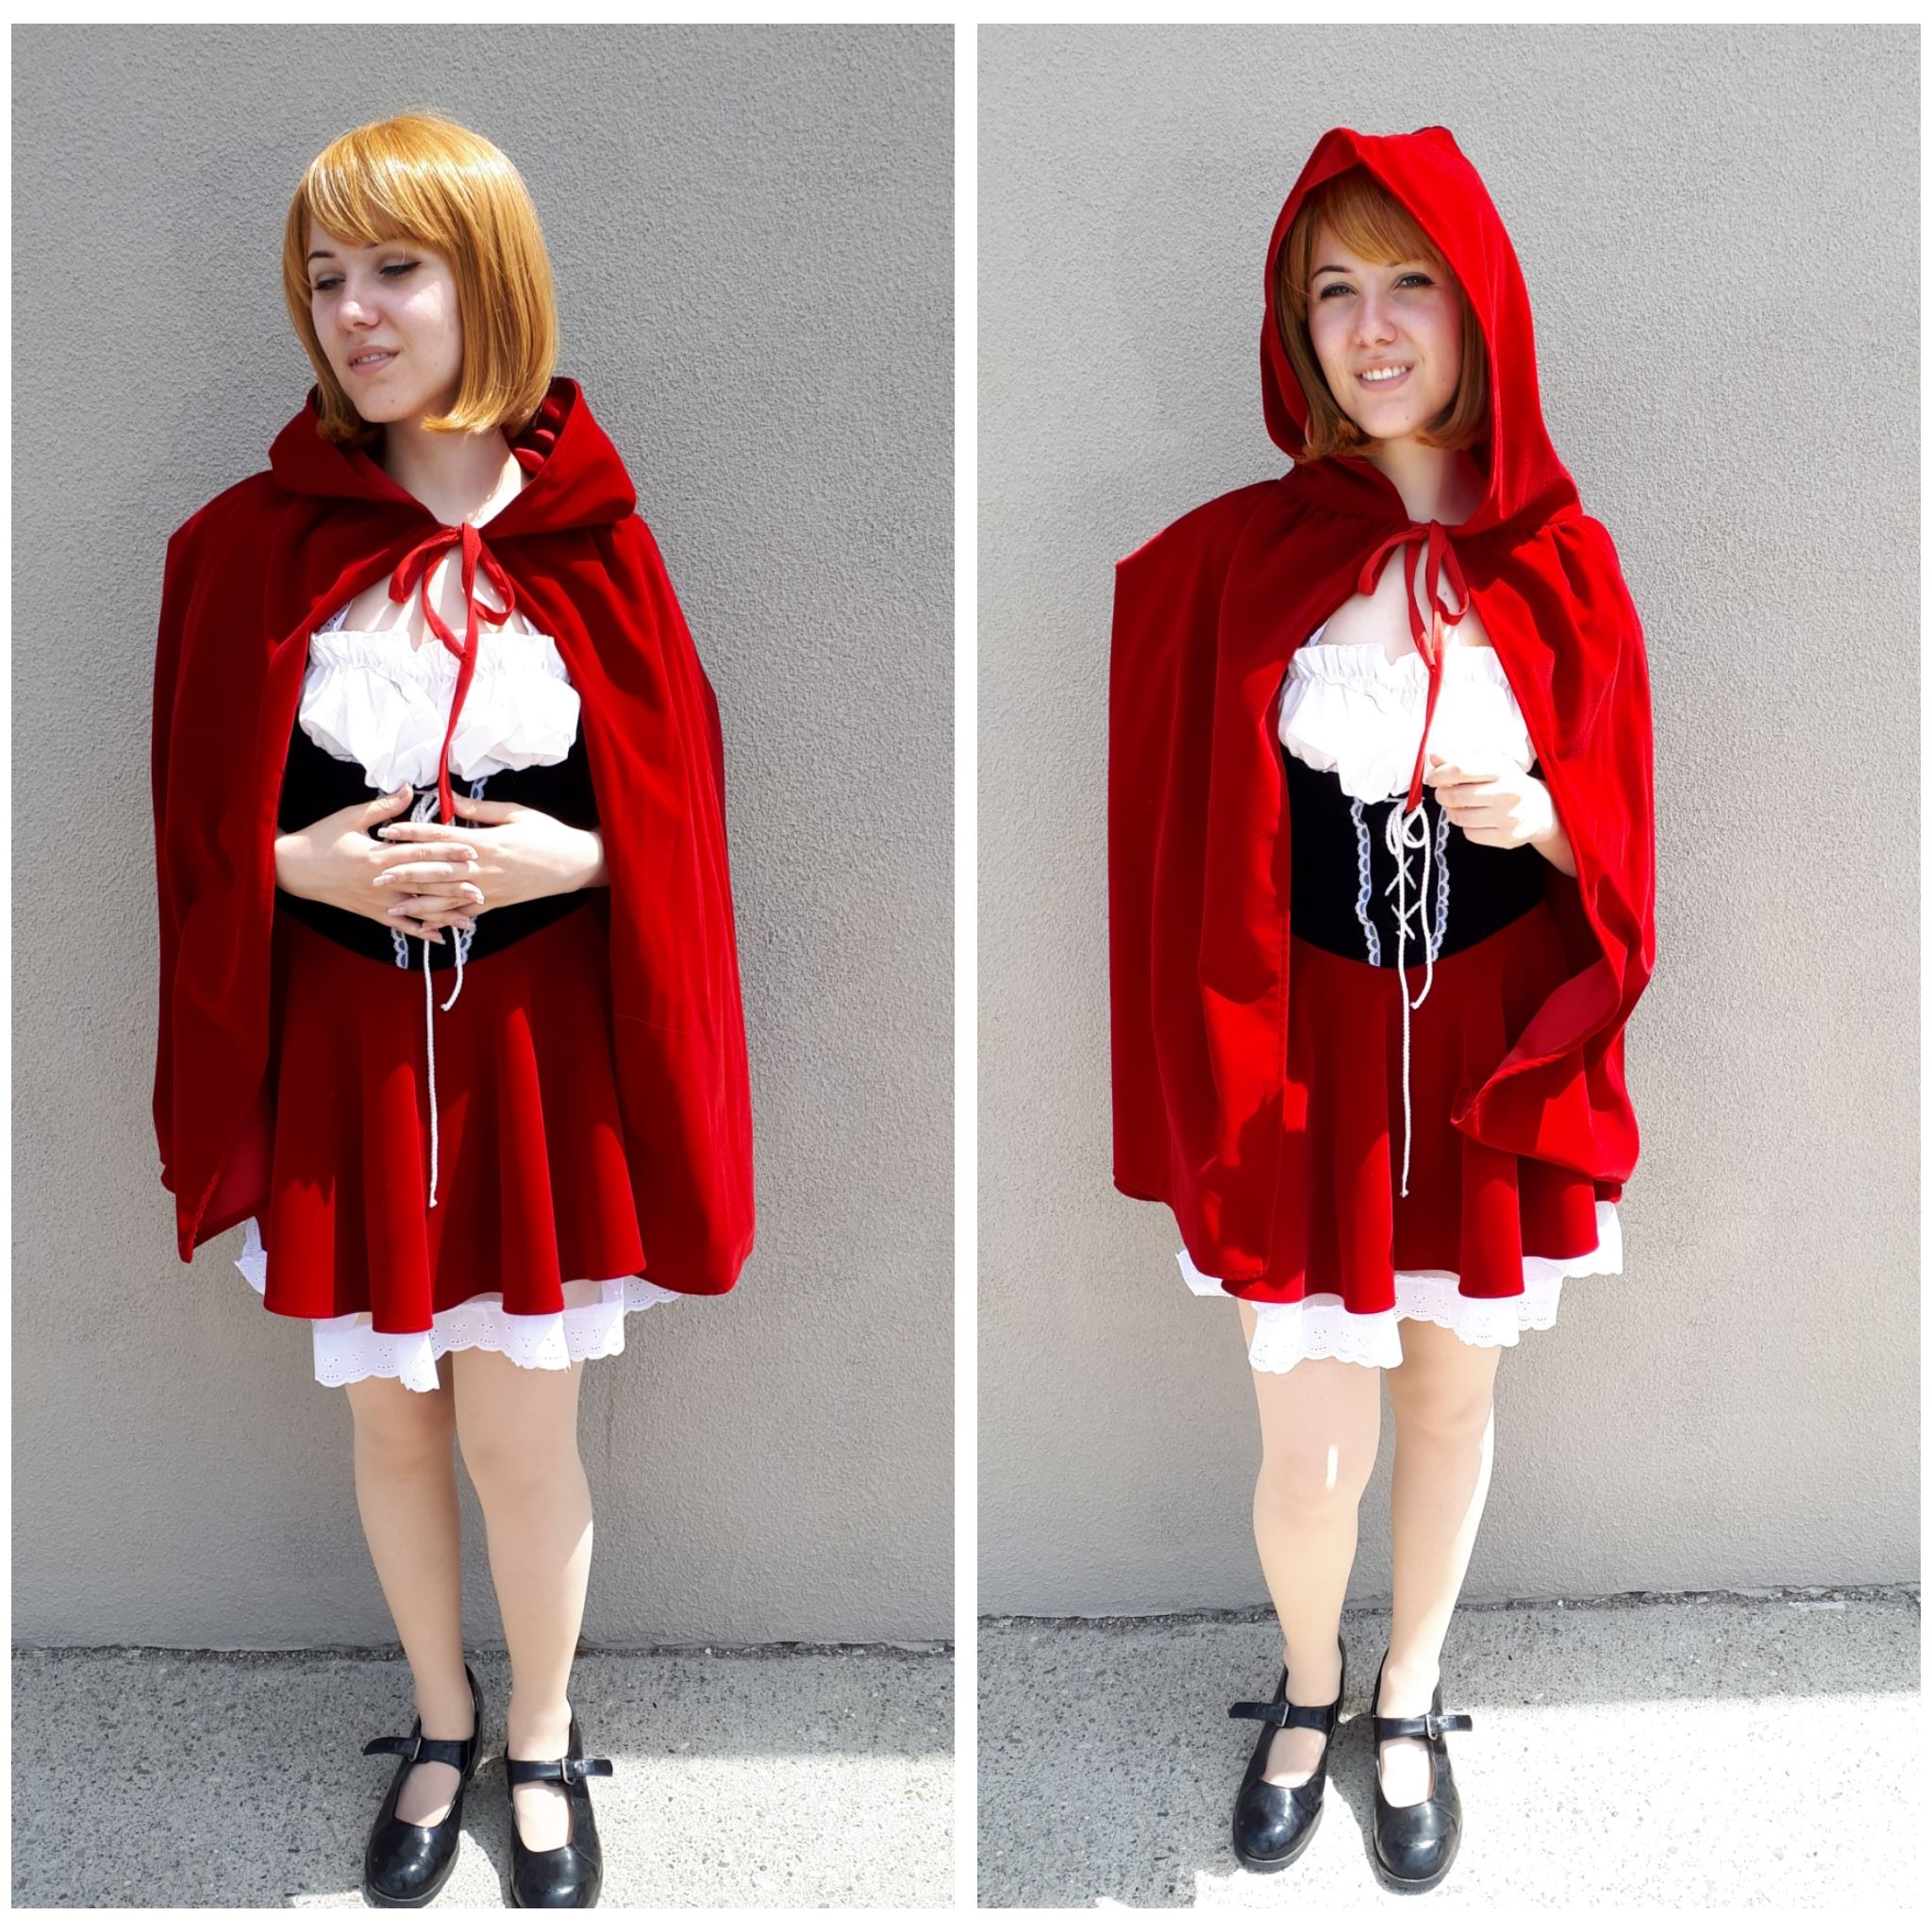 Sexy Red Riding Hood